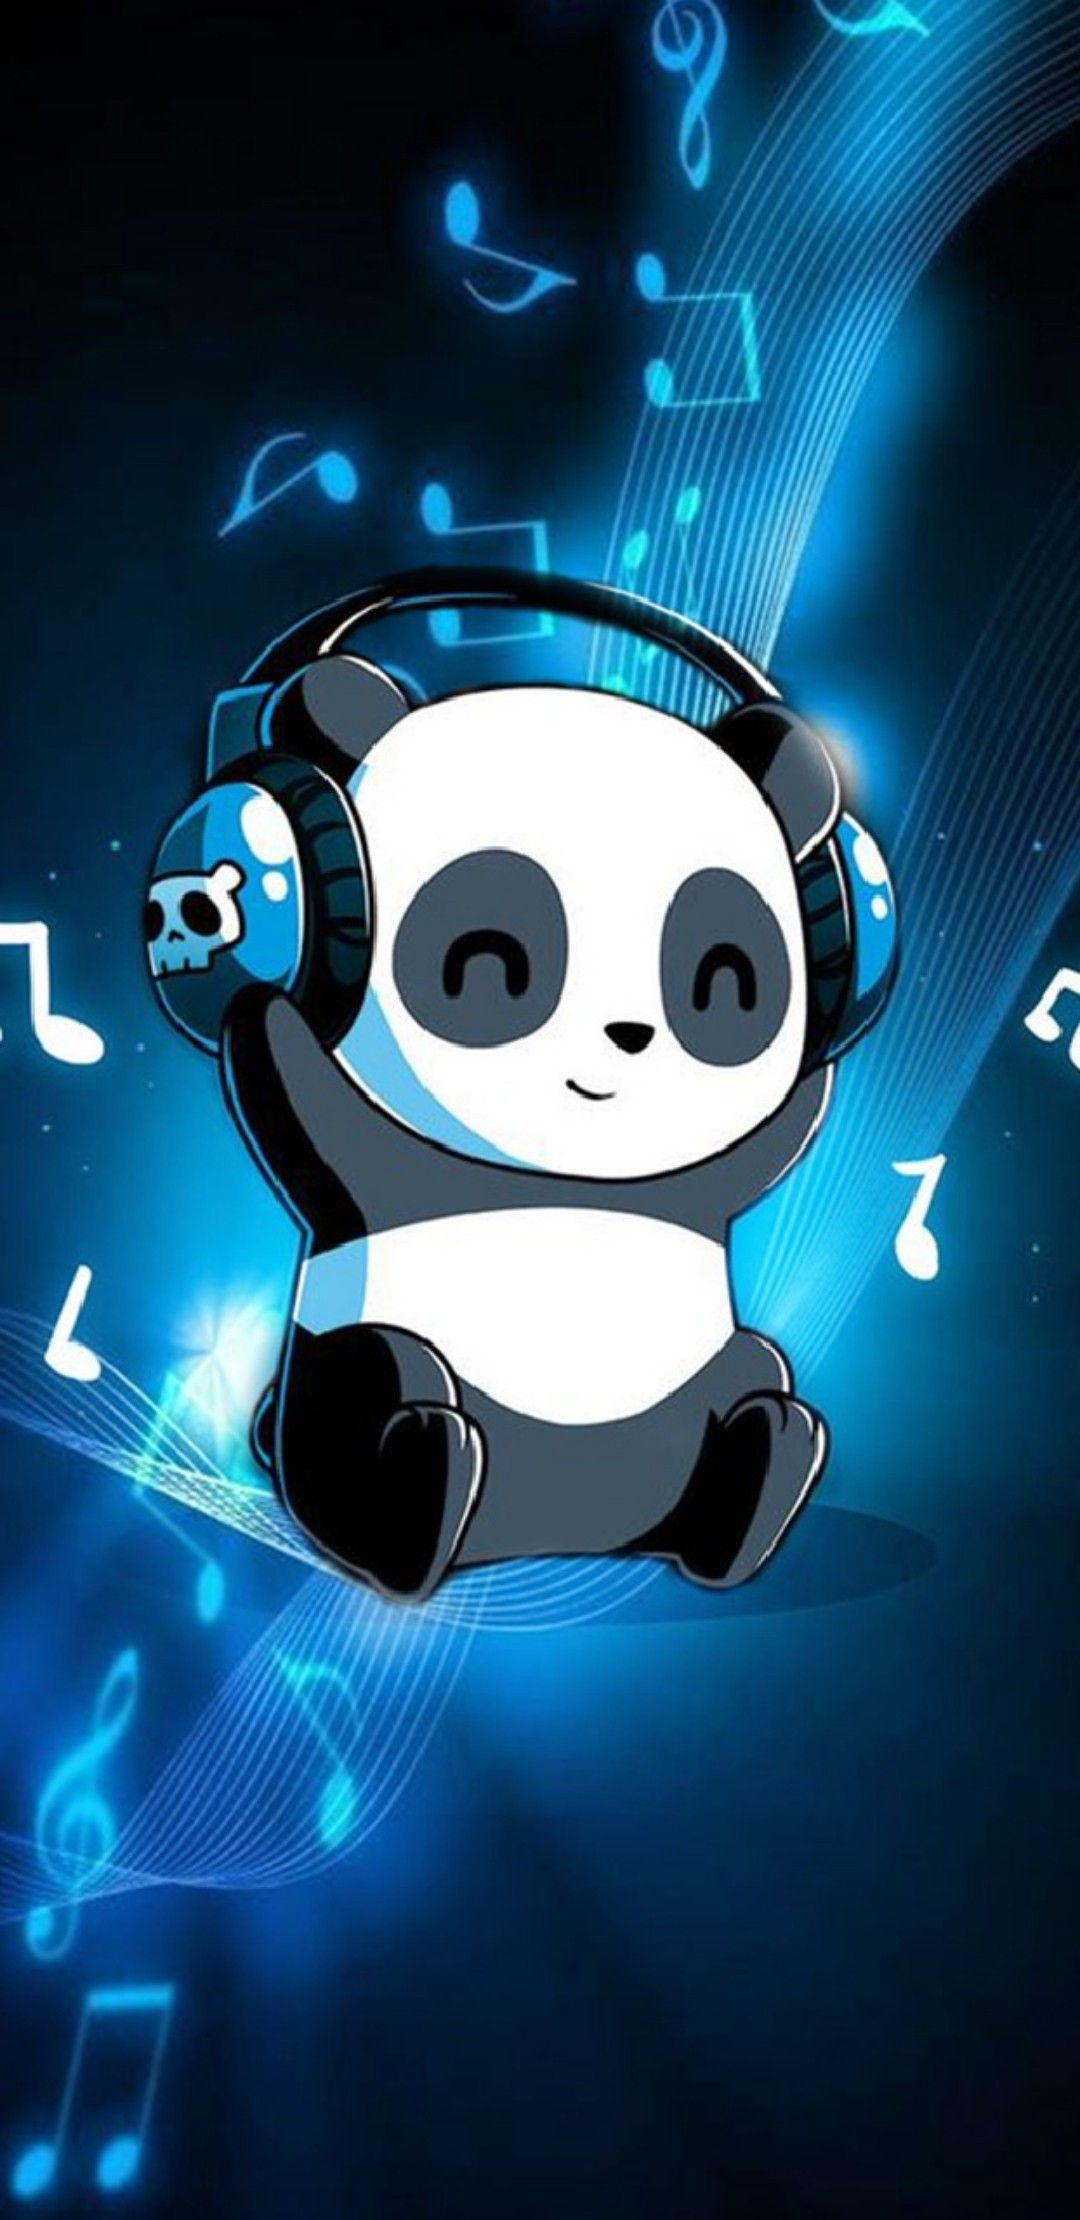 Most Nice Anime Wallpaper Iphone Funny Cute Panda Wallpaper Panda Wallpapers Anime Wallpaper Iphone